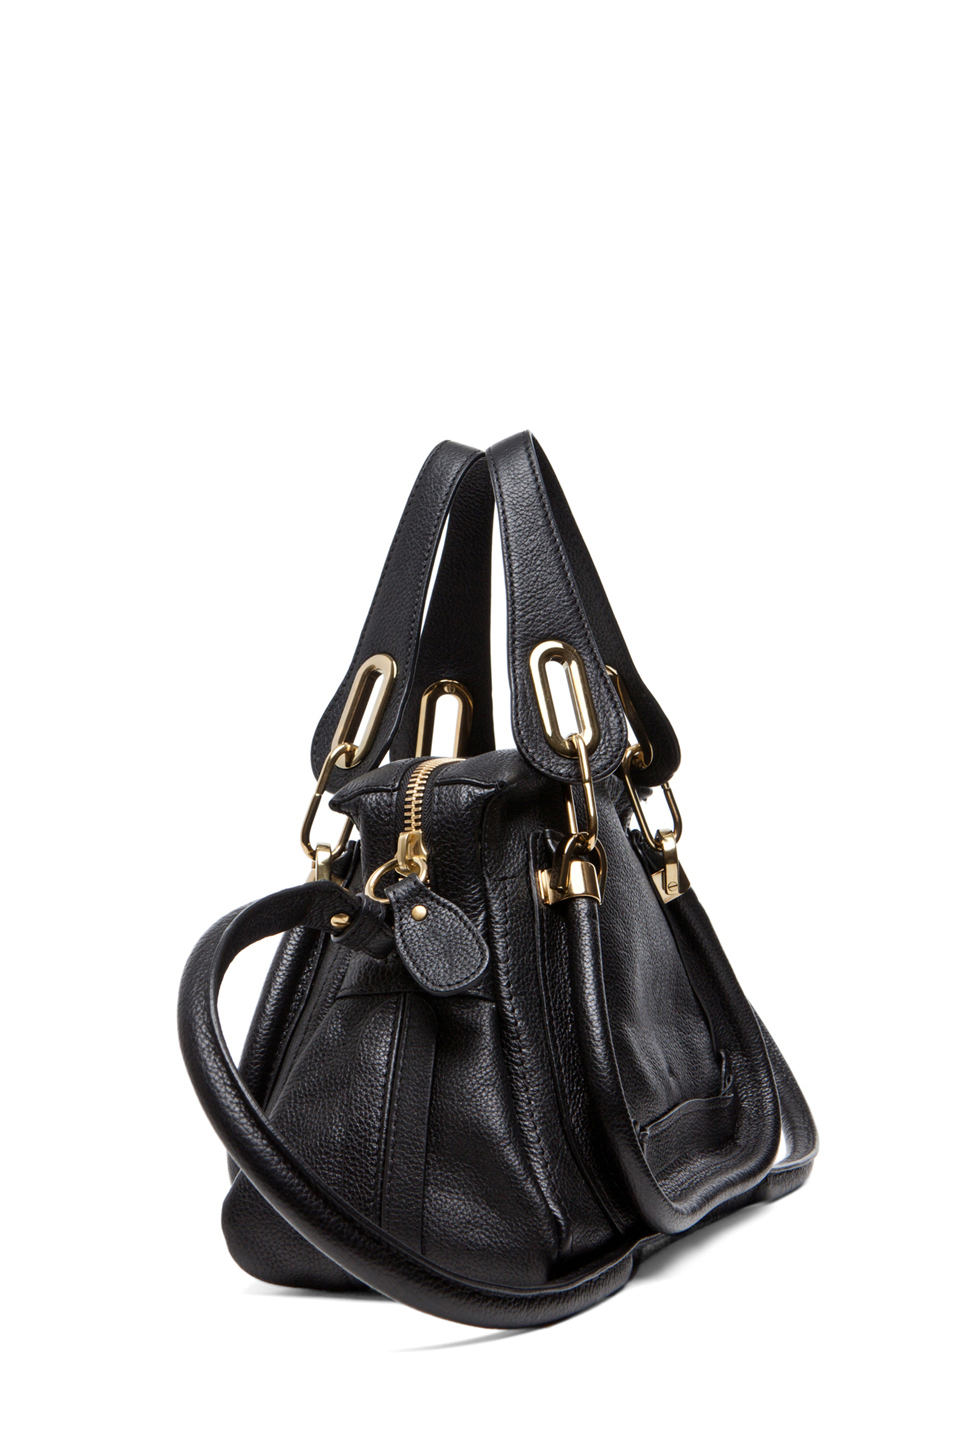 chloe bags online - Chlo�� Paraty Small Shoulder Bag in Black | Lyst